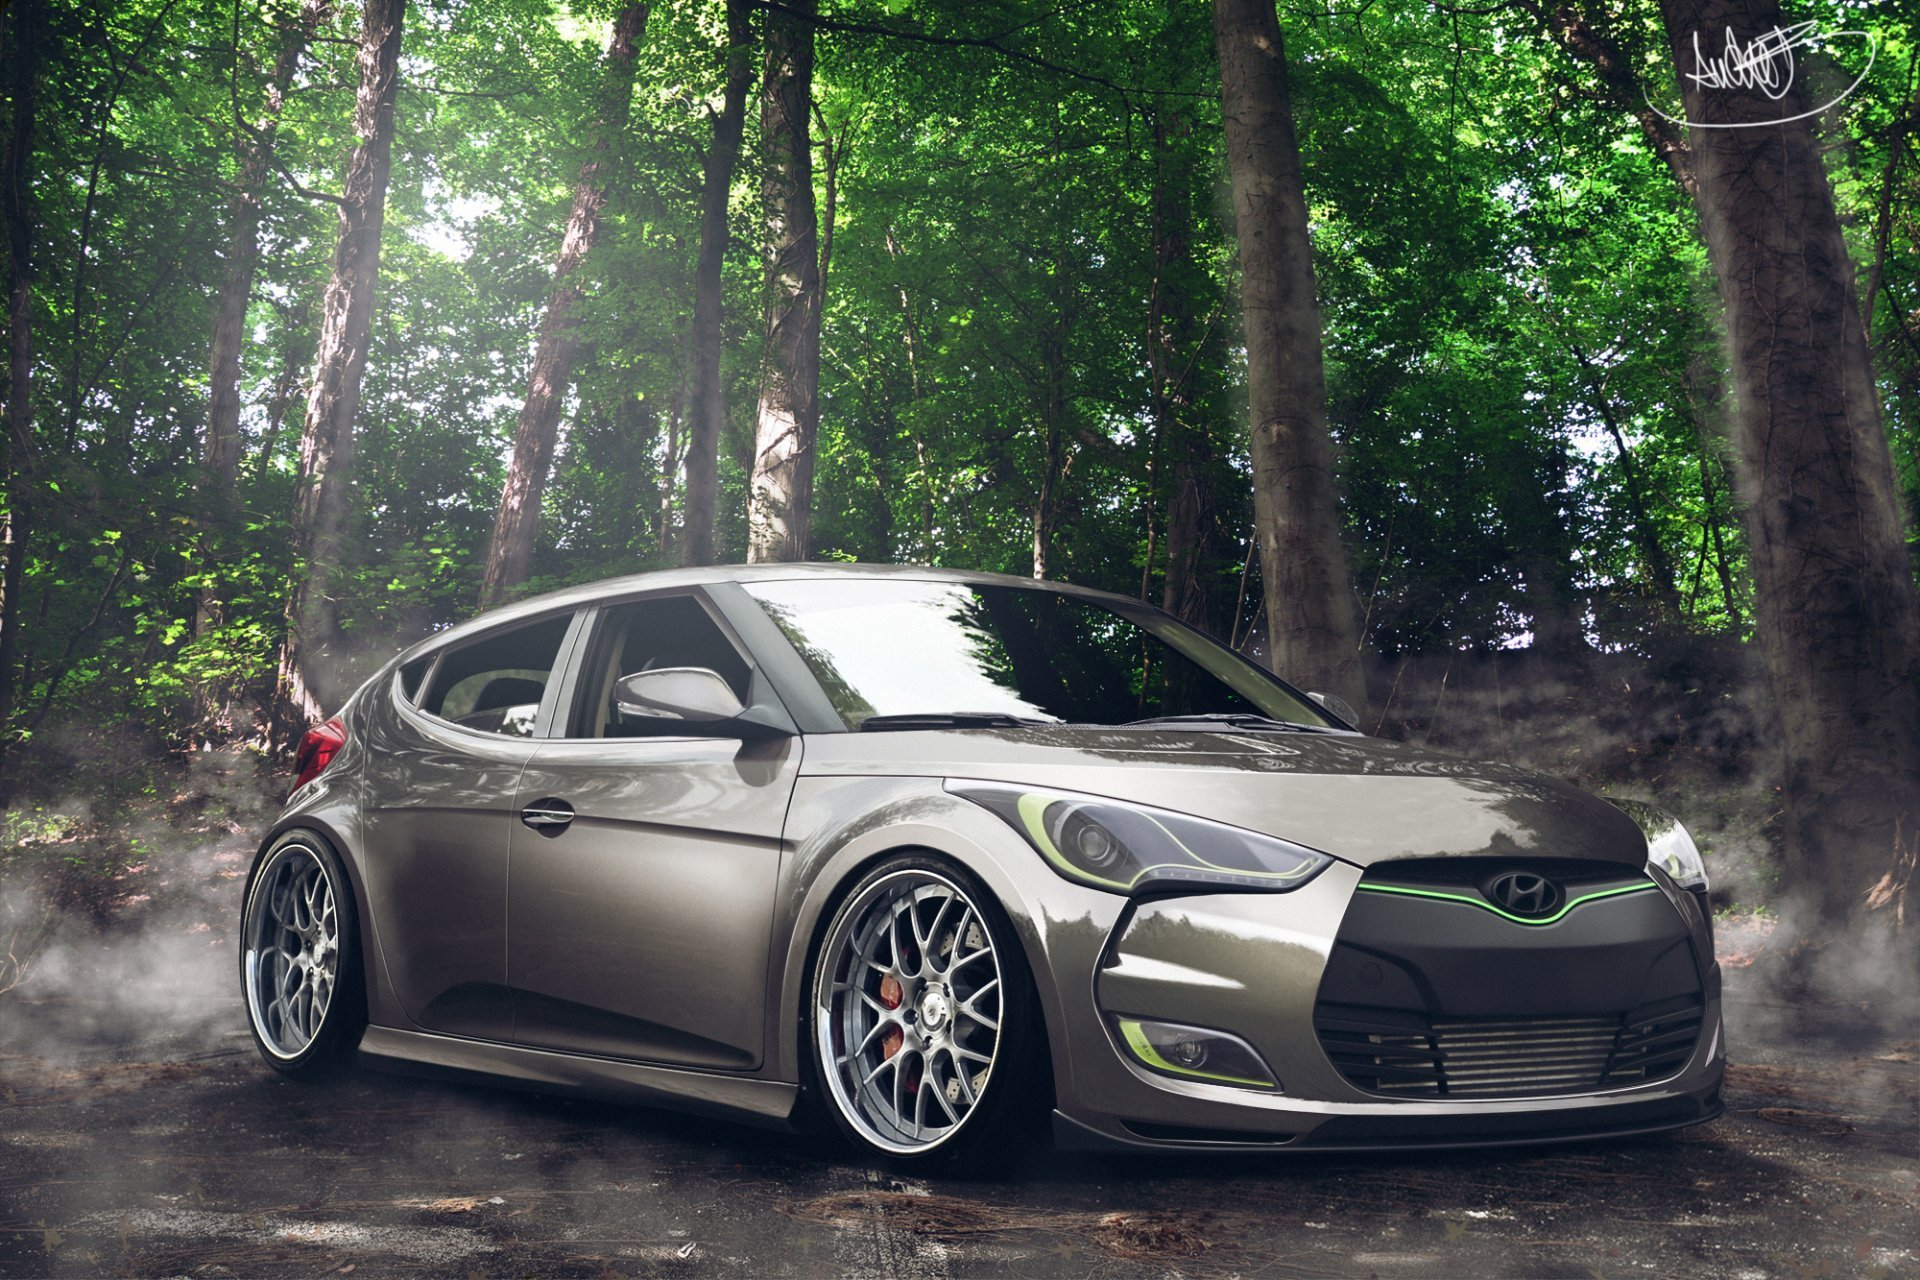 hyundai veloster tuning by asoares HD wallpaper 1920x1280